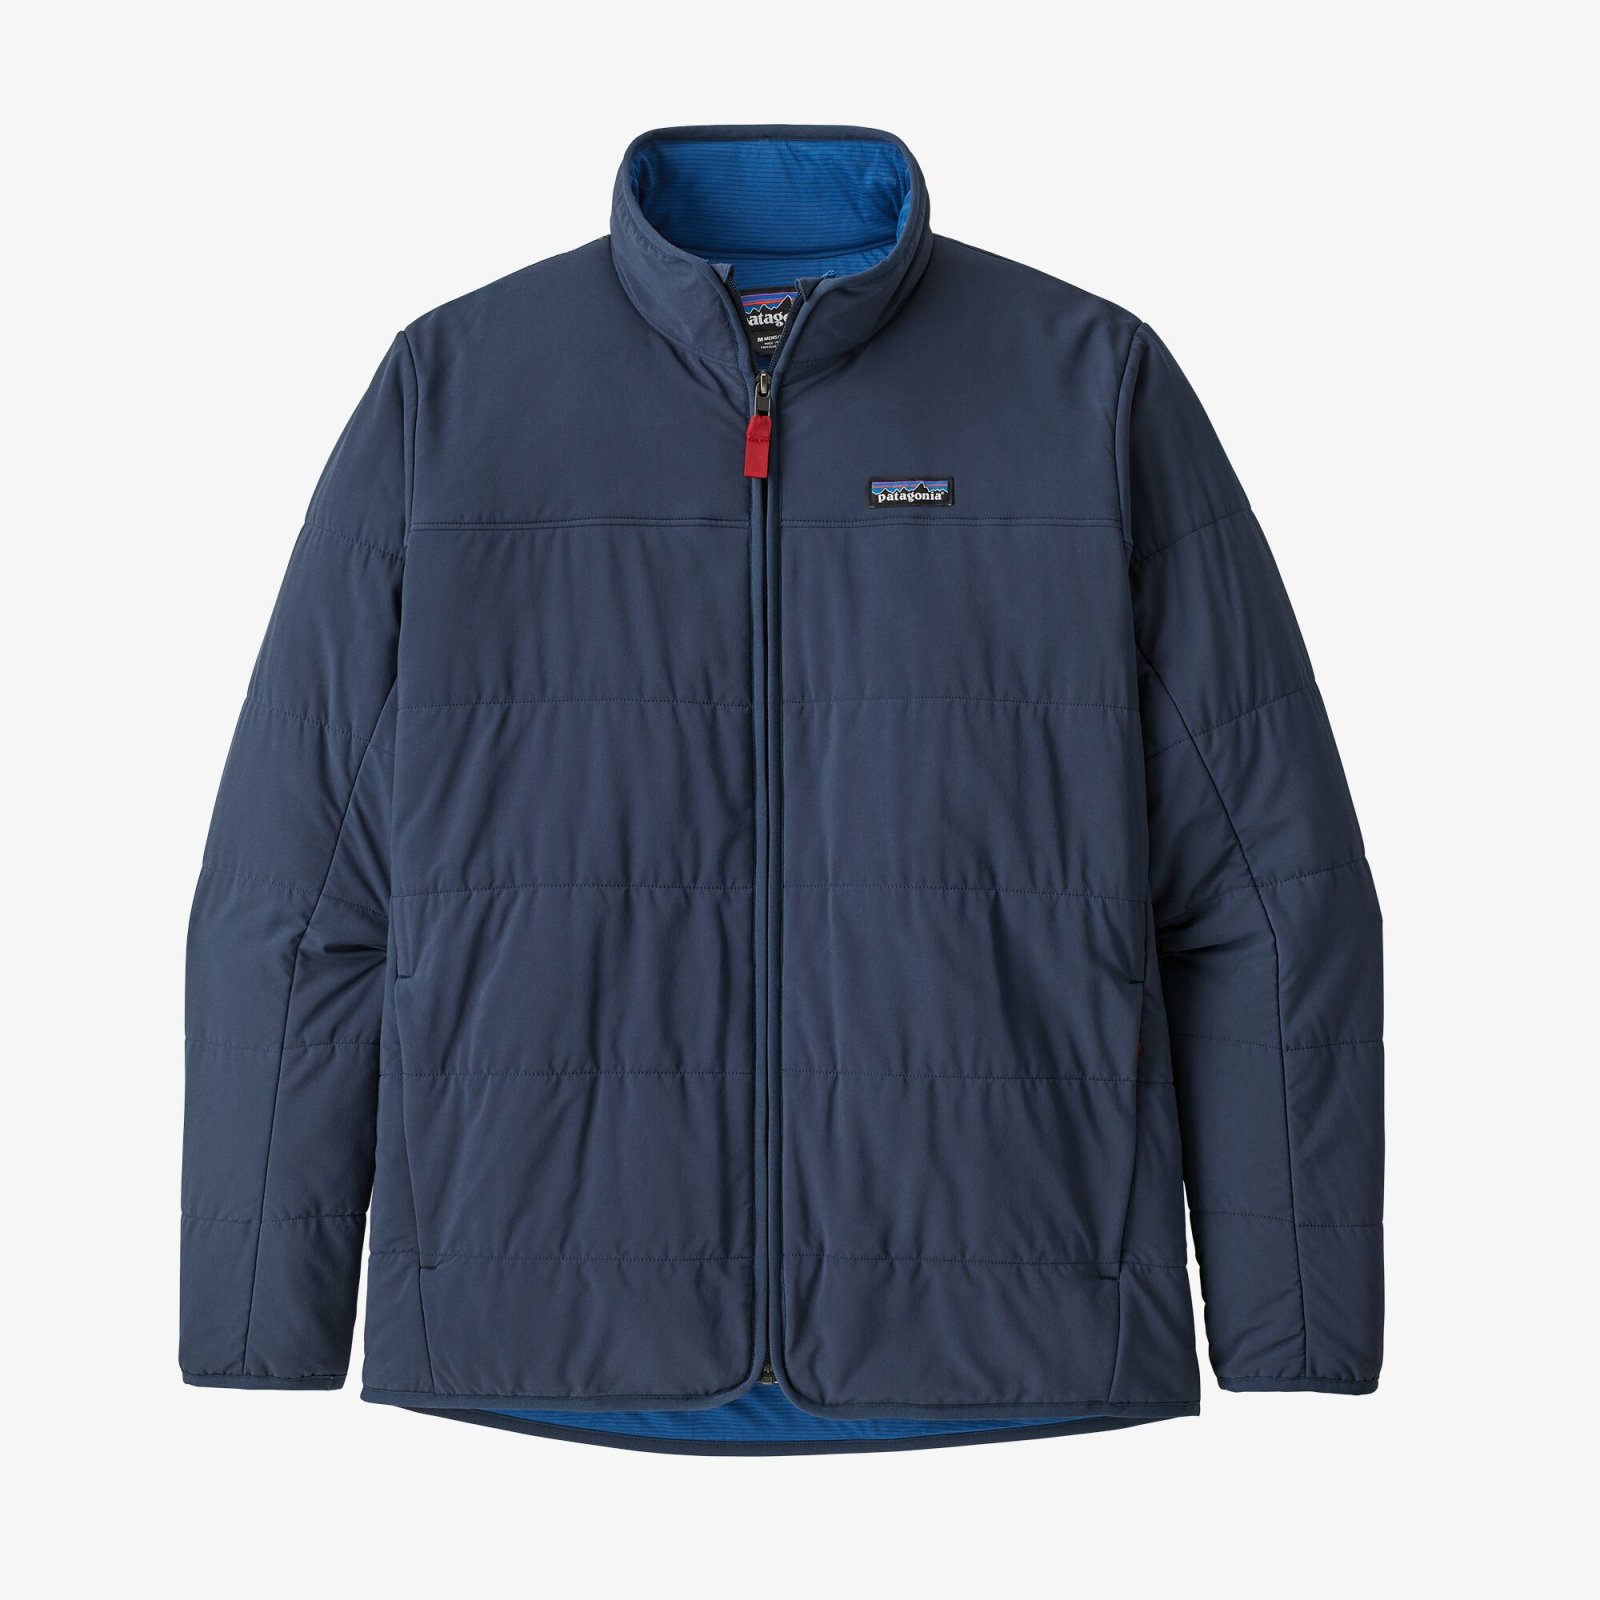 M's Patagonia Pack In Jacket in New Navy